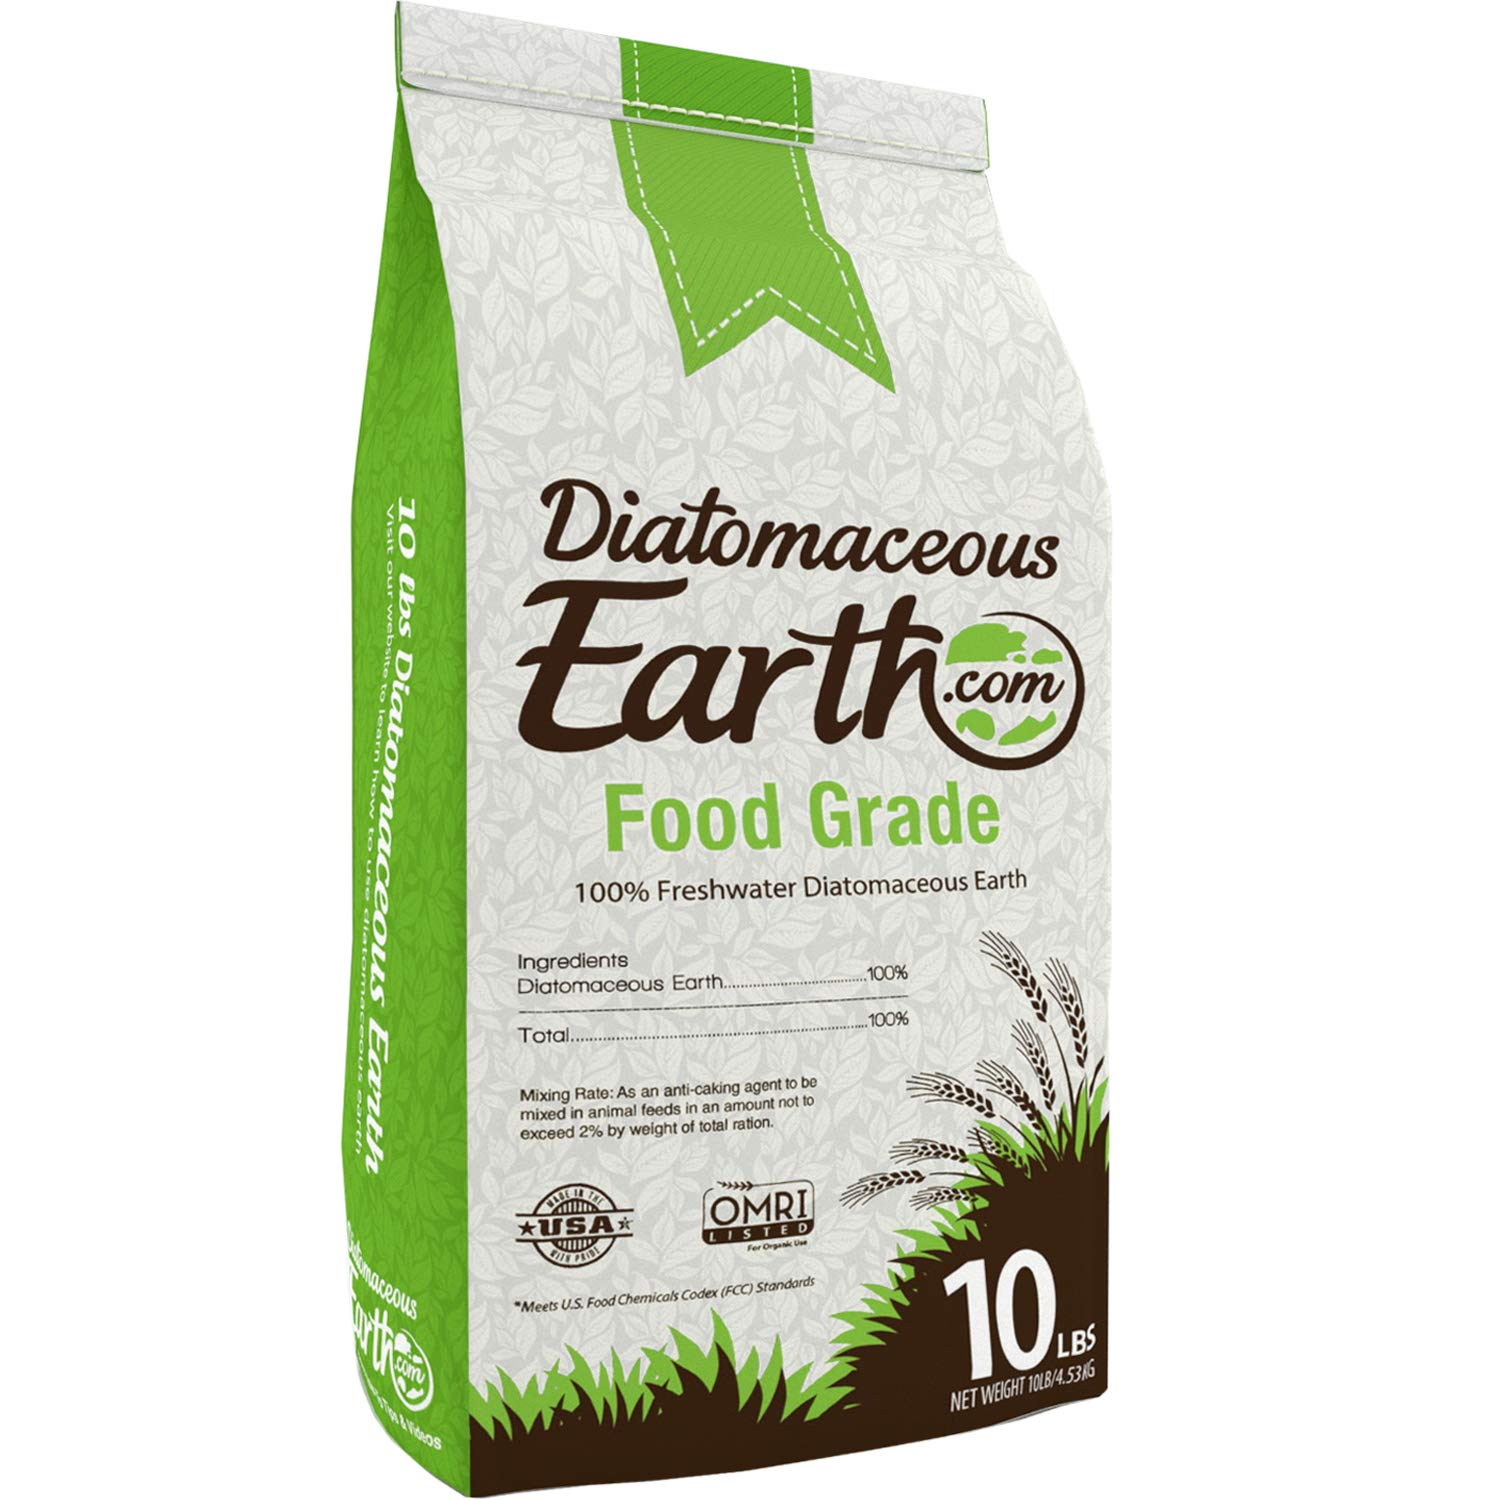 Amazoncom Diatomaceous Earth Food Grade 10 Lb Garden Outdoor